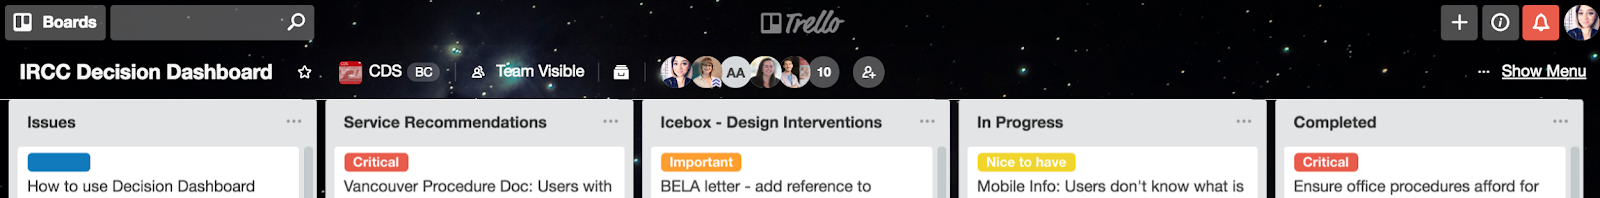 The Decision Dashboard on Trello is split into five lists with these headings: Issues, Service Recommendations, Icebox - Design Interventions, In Progress, and Completed.